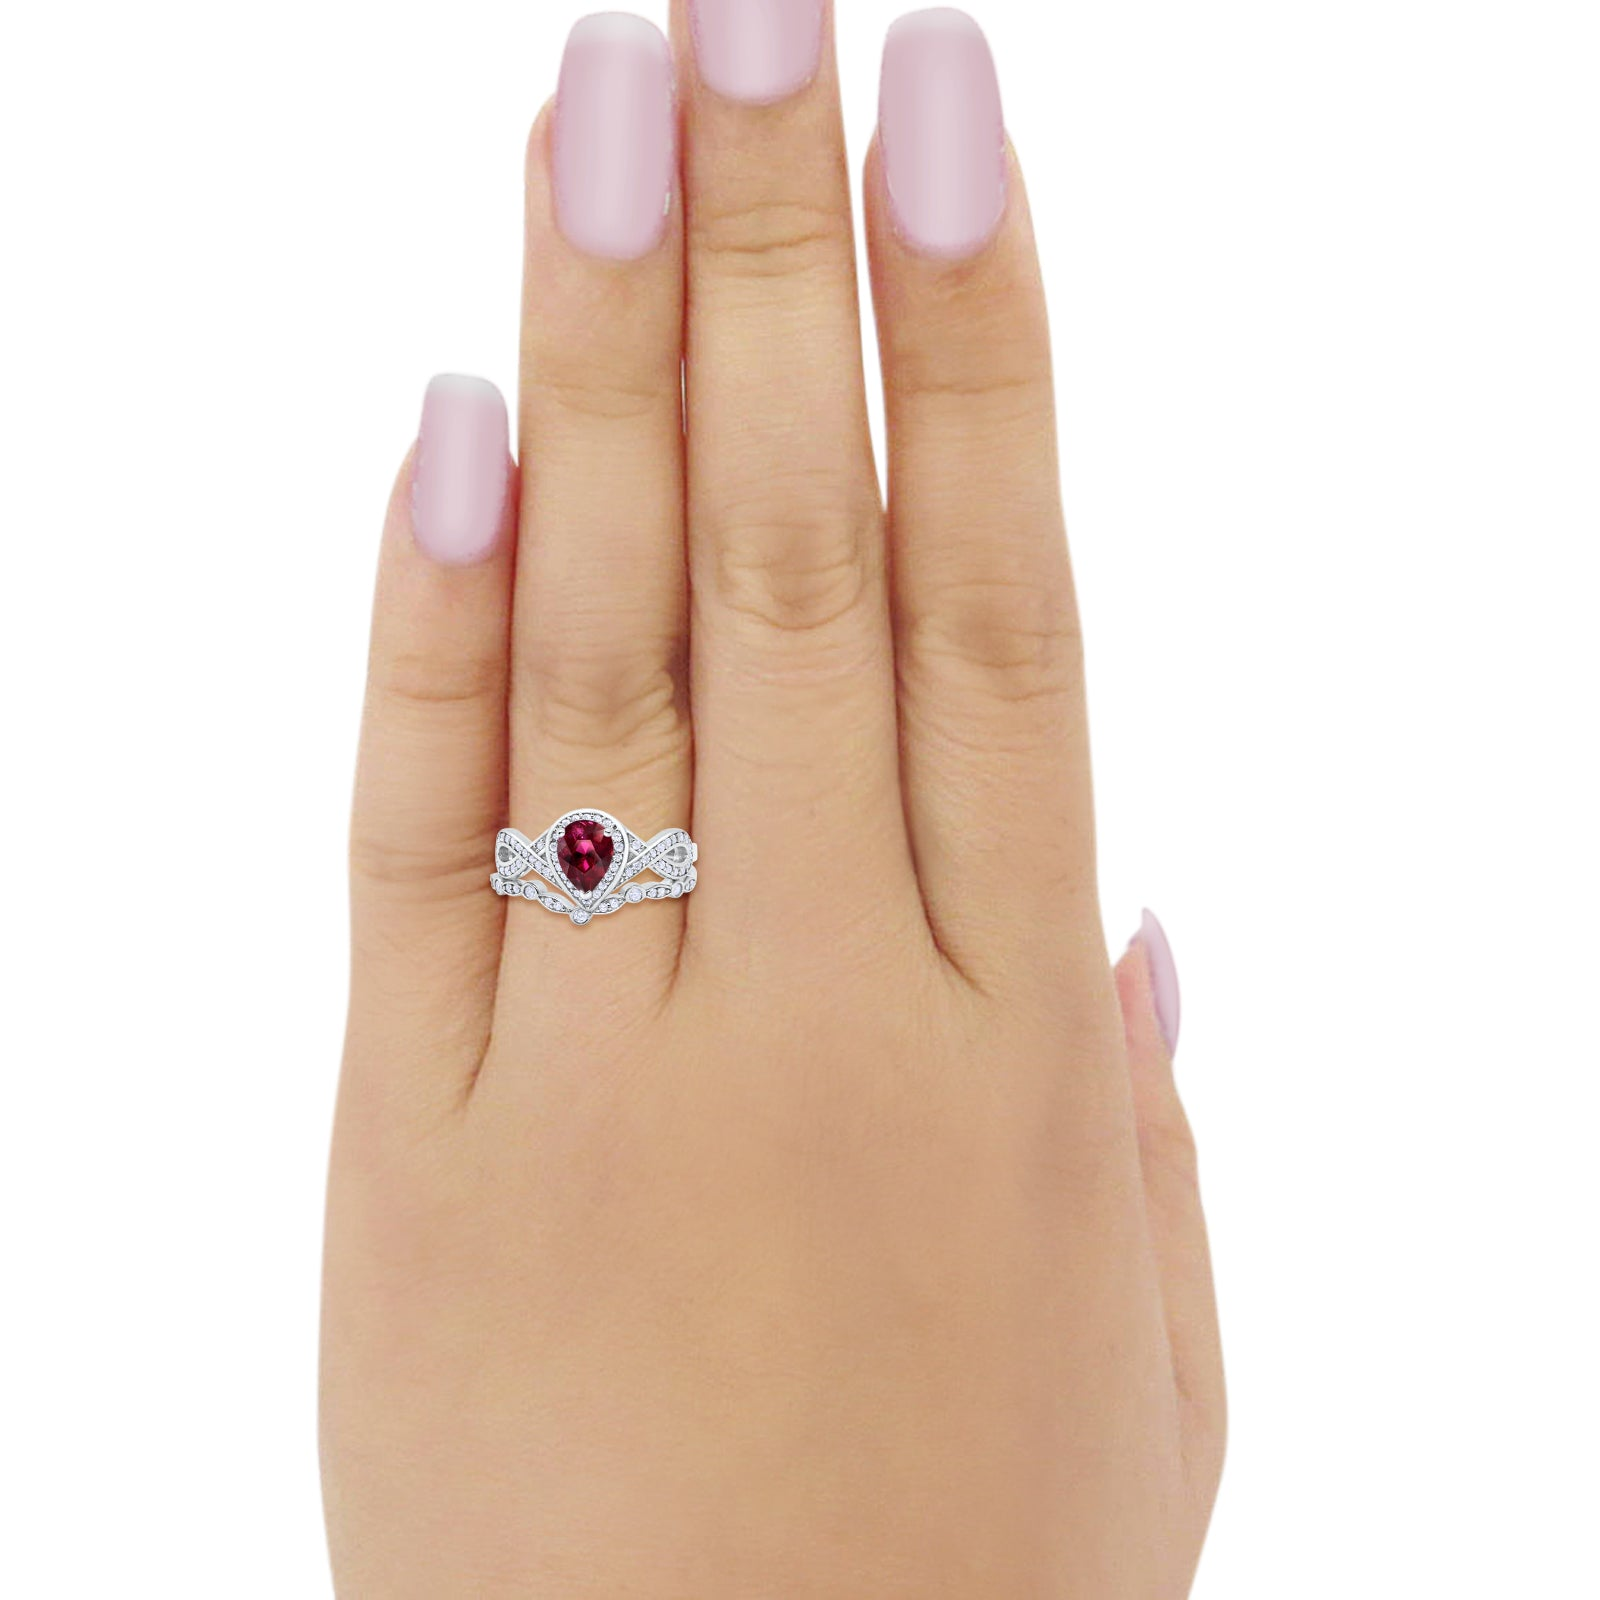 Teardrop Wedding Ring Band Piece Simulated Ruby CZ 925 Sterling Silver